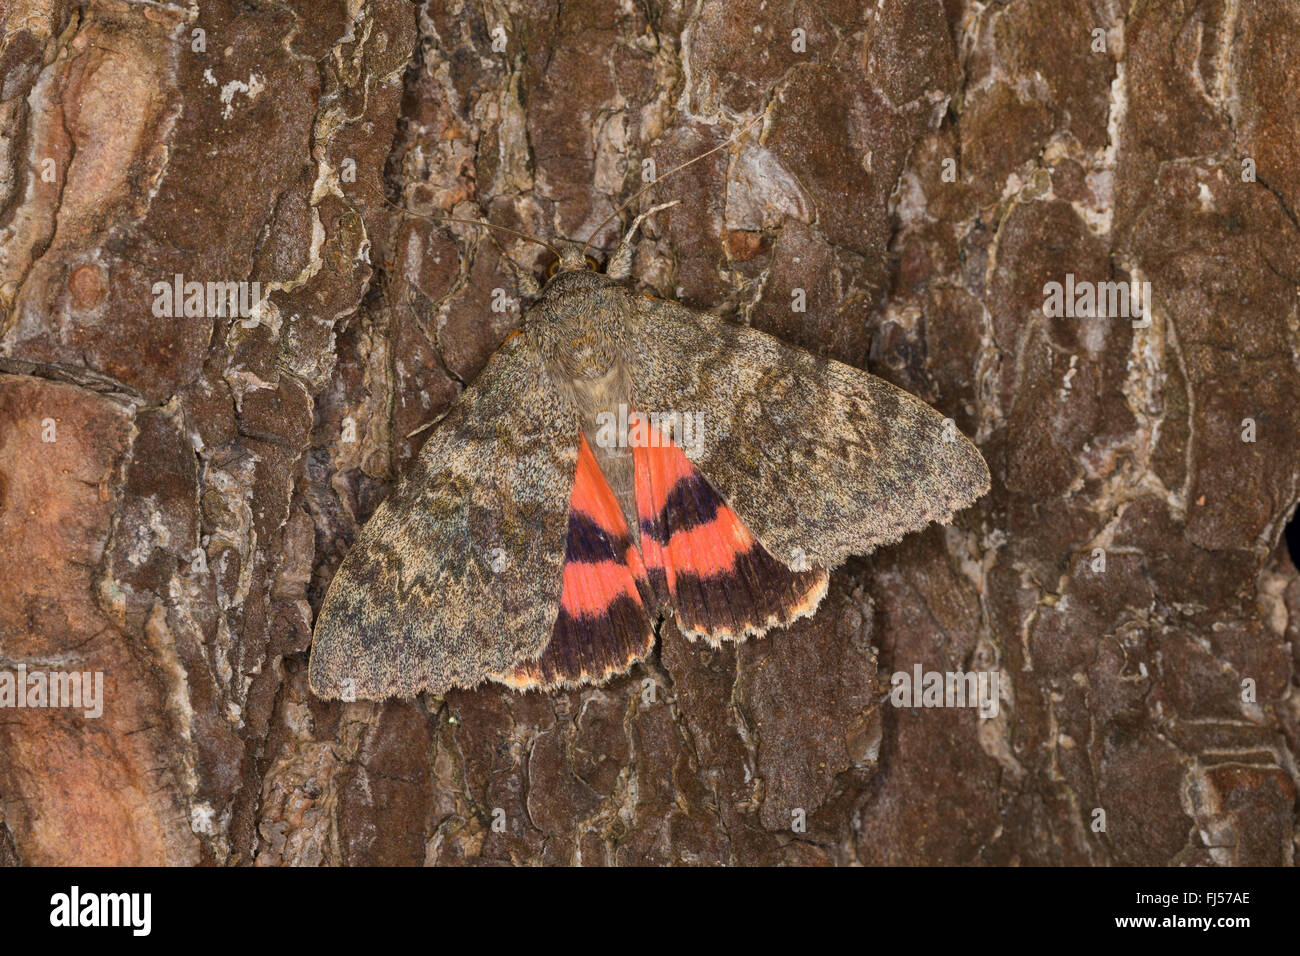 poplar underwing (Catocala elocata), on bark, view from above, Germany - Stock Image